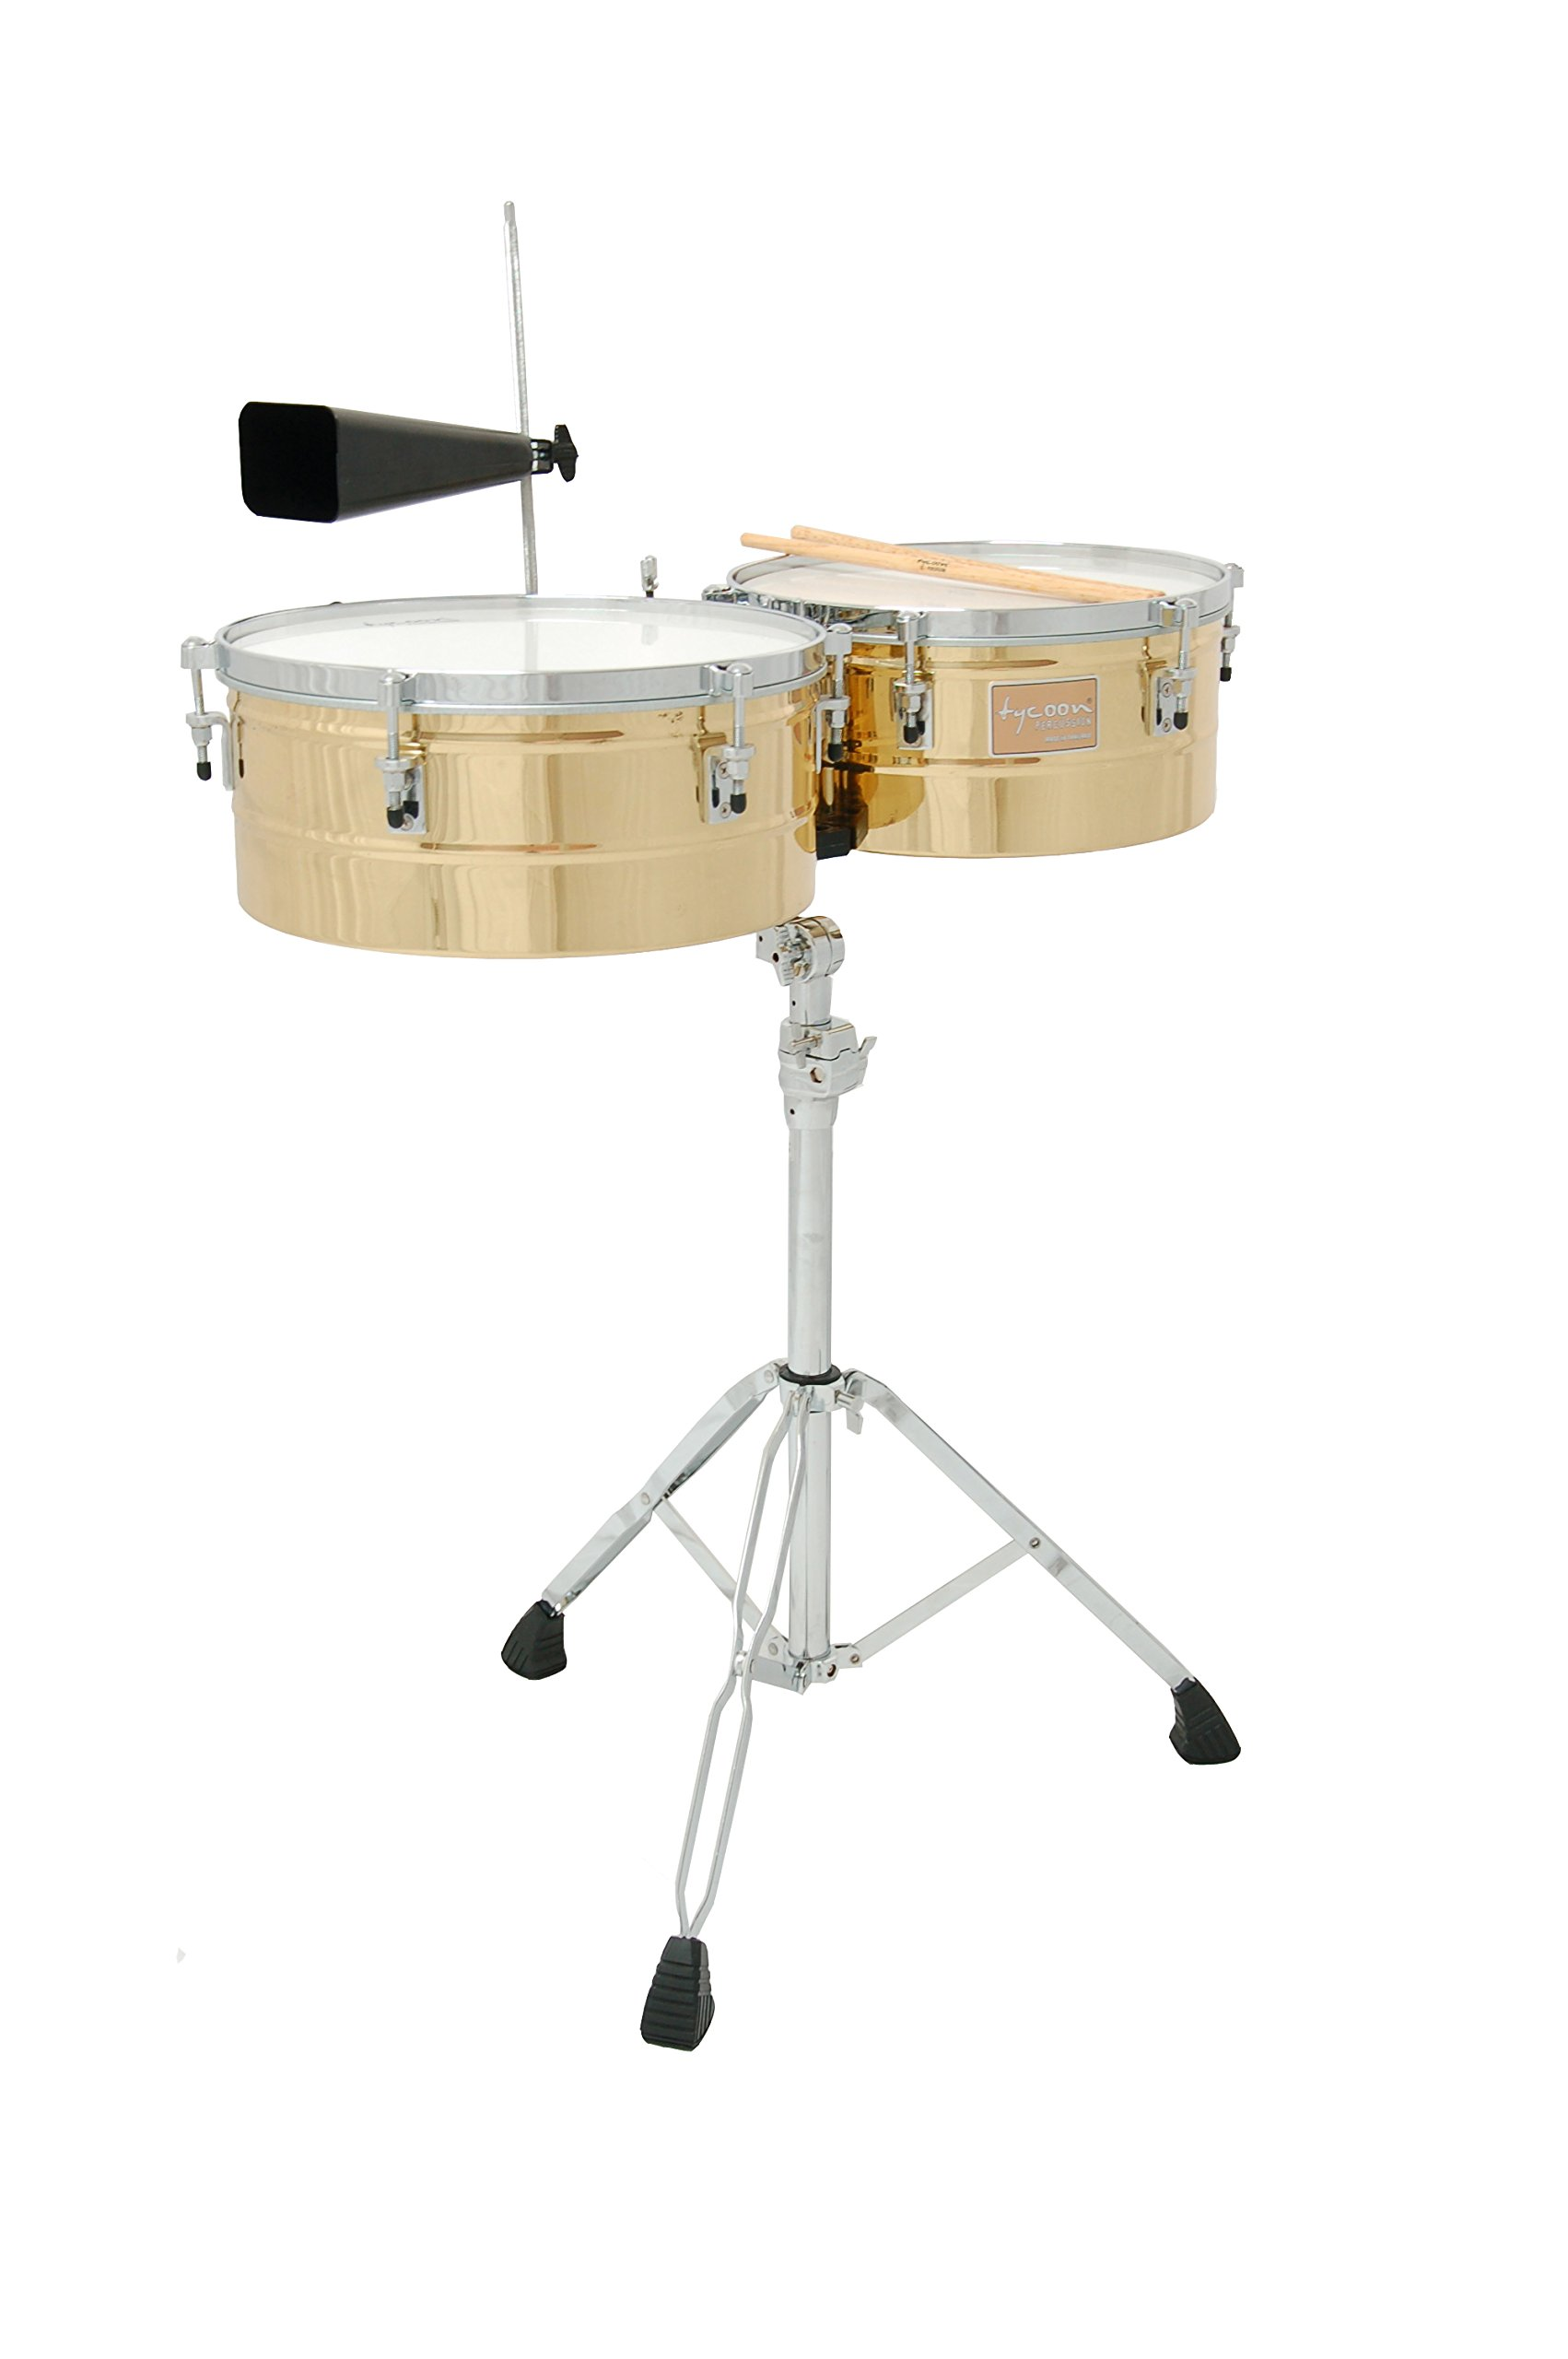 Tycoon Percussion 14 Inch & 15 Inch Brass Shell Timbales